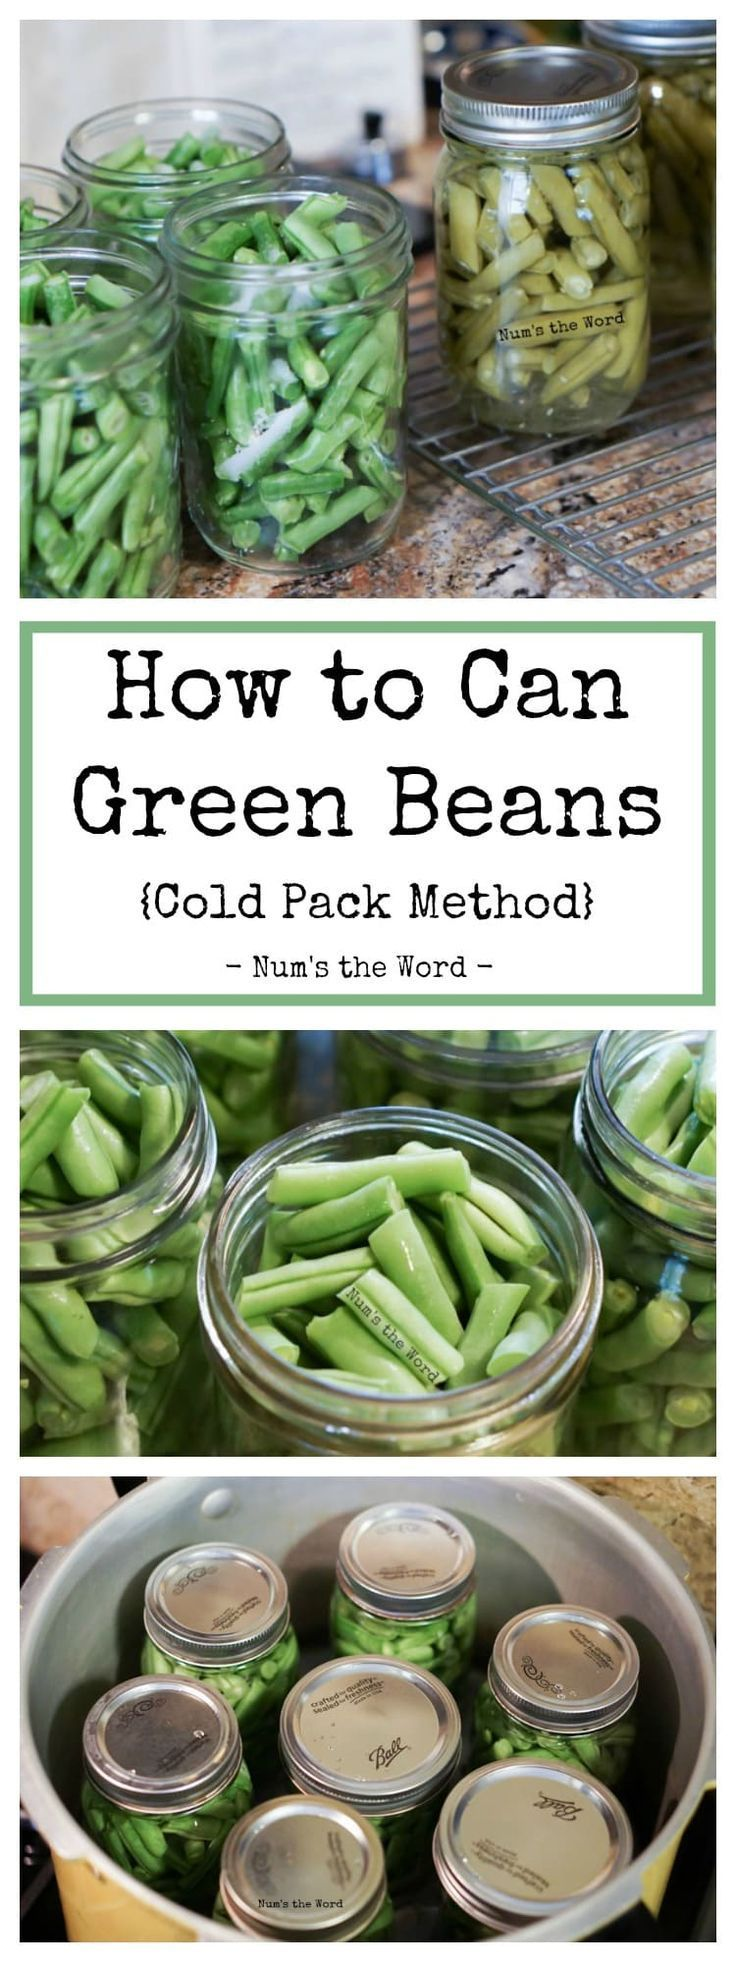 This step by step guide (with photos) on how to can green